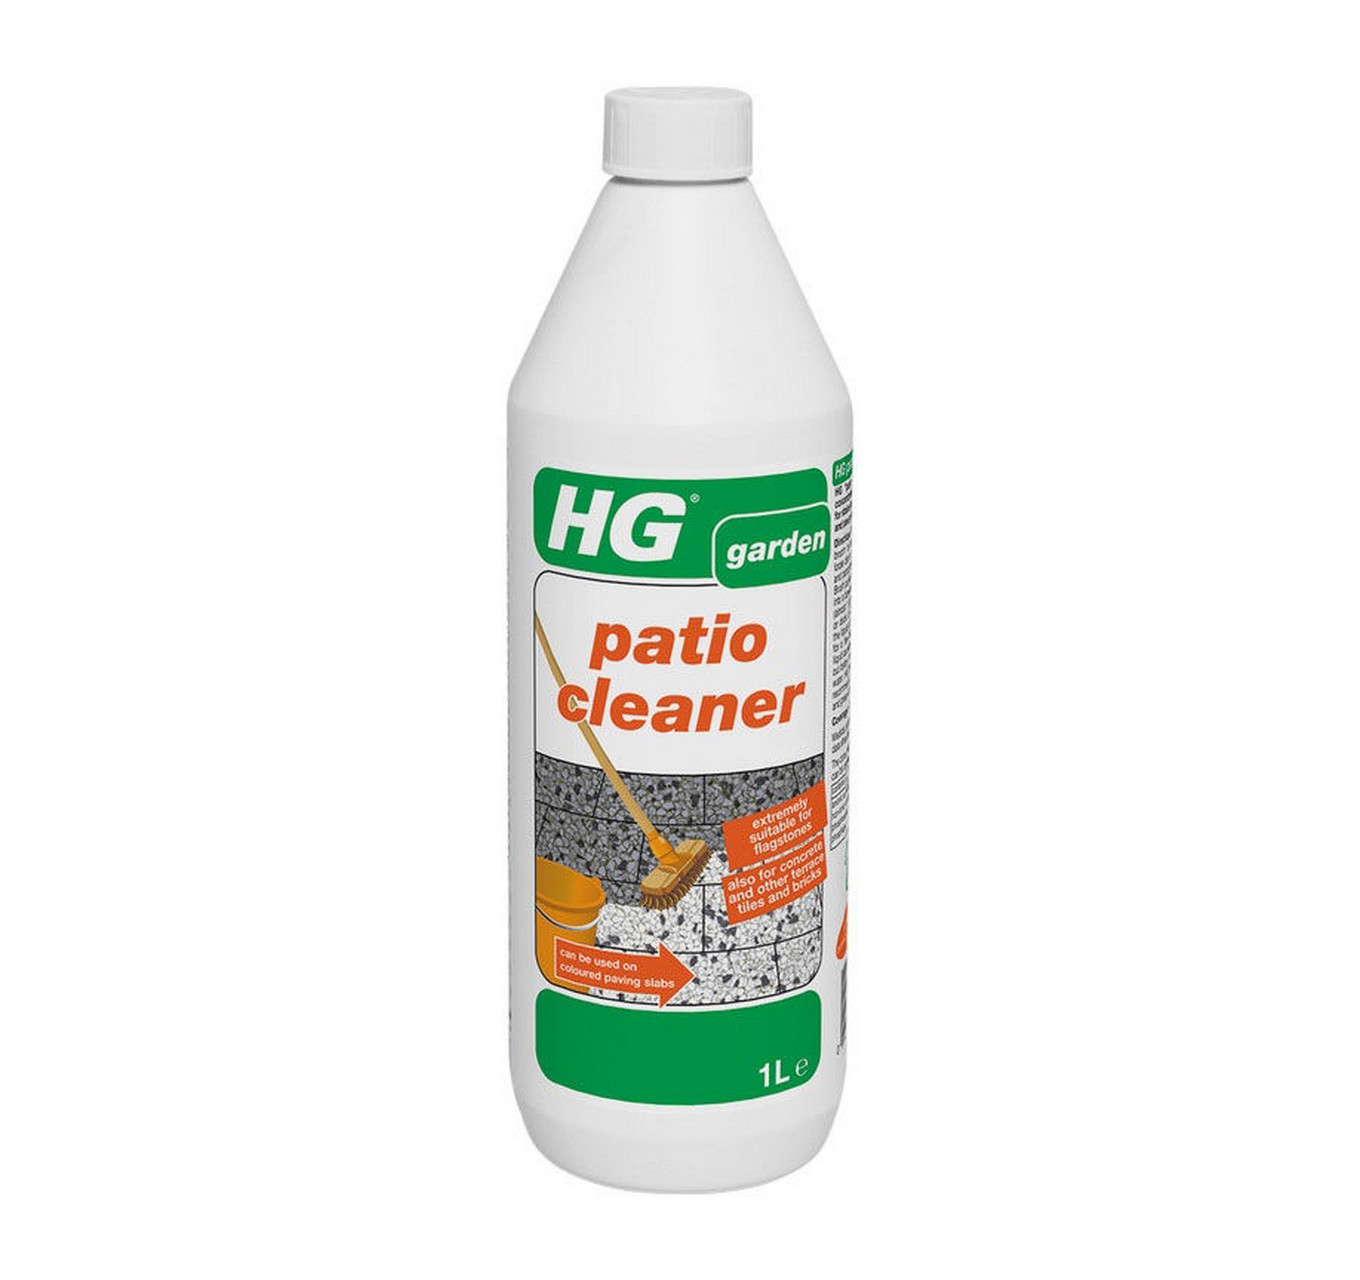 Hg Patio Cleaner 1ltr